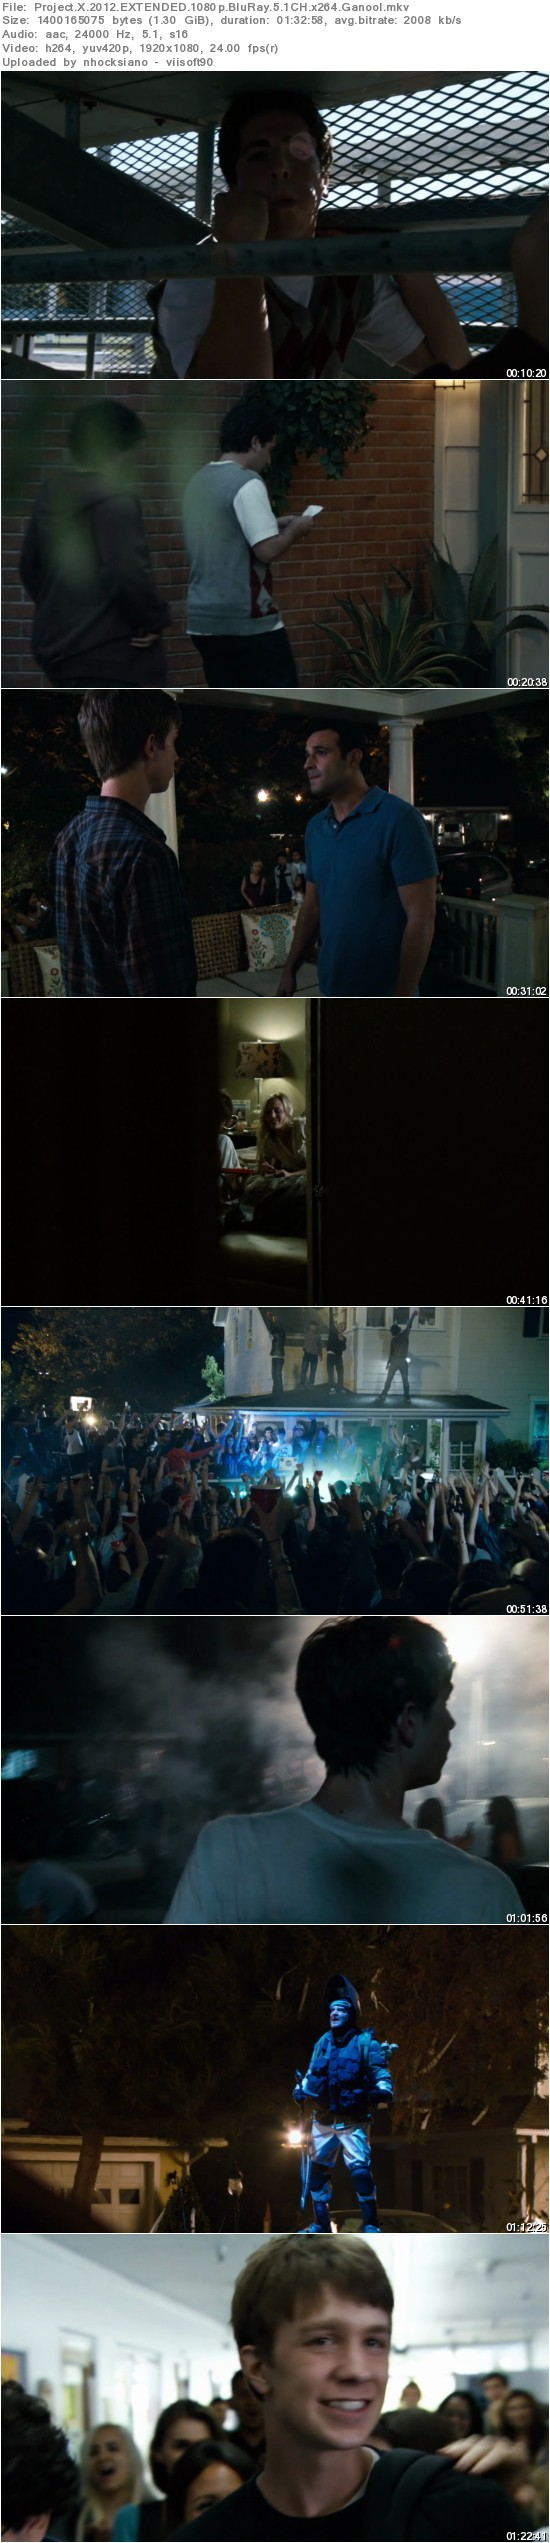 Project X (2012) EXTENDED BluRay 1080p x264 AAC 5.1  -  Ganool